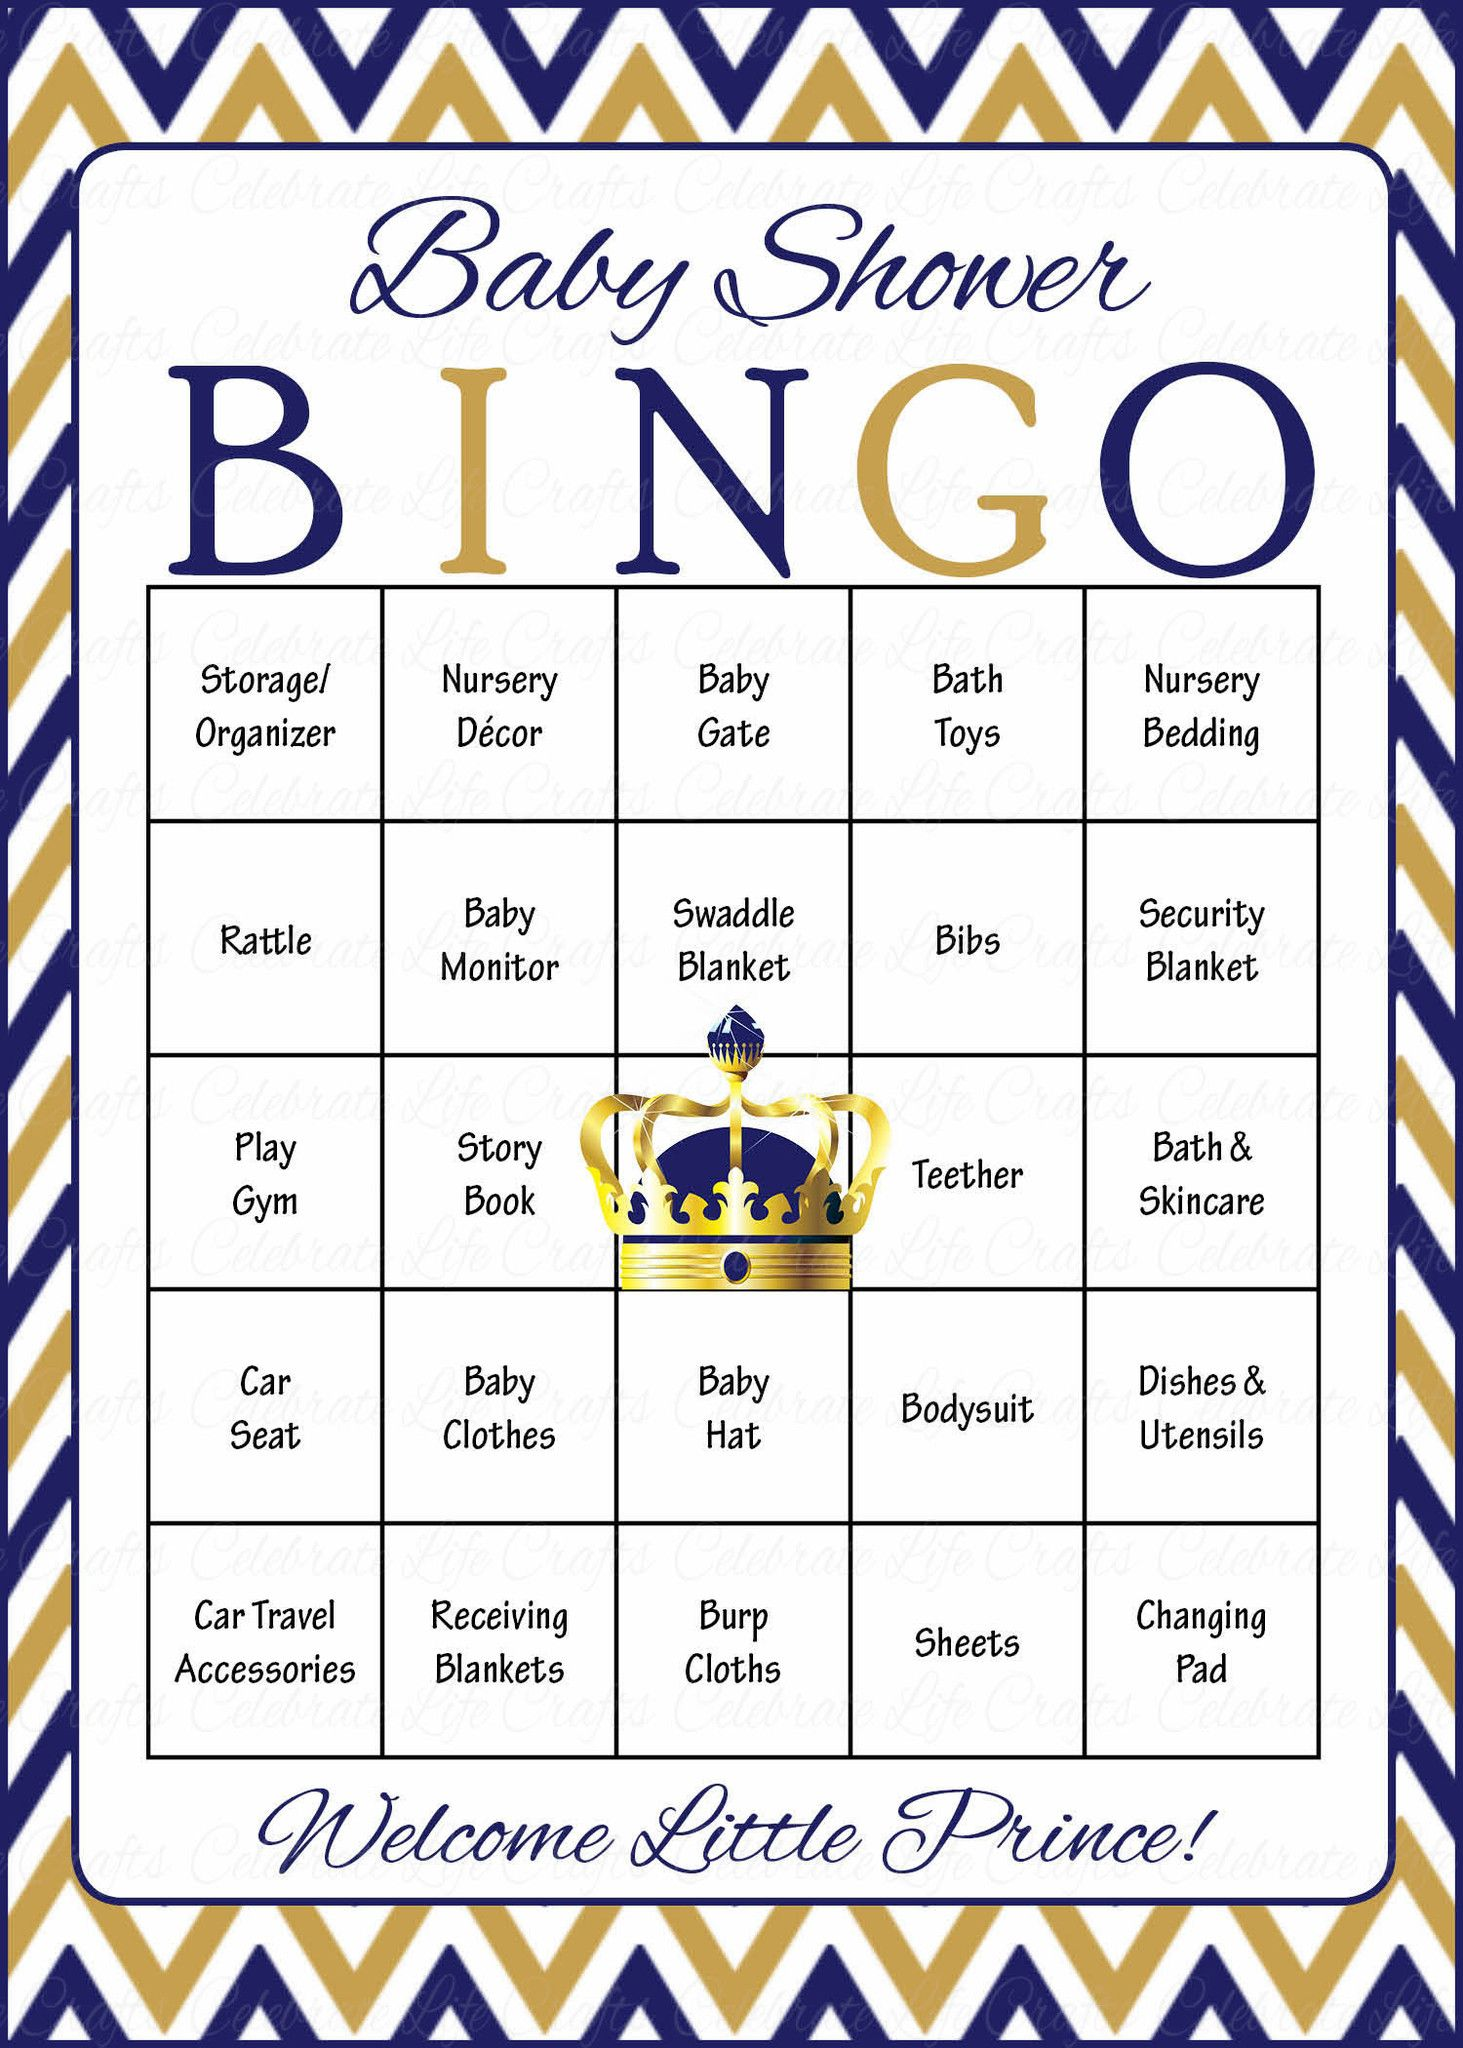 king of the bingo game You will find latest cheats and cheat codes for king bingo below which may allows you to get premium items in game for free or speed up your game play].